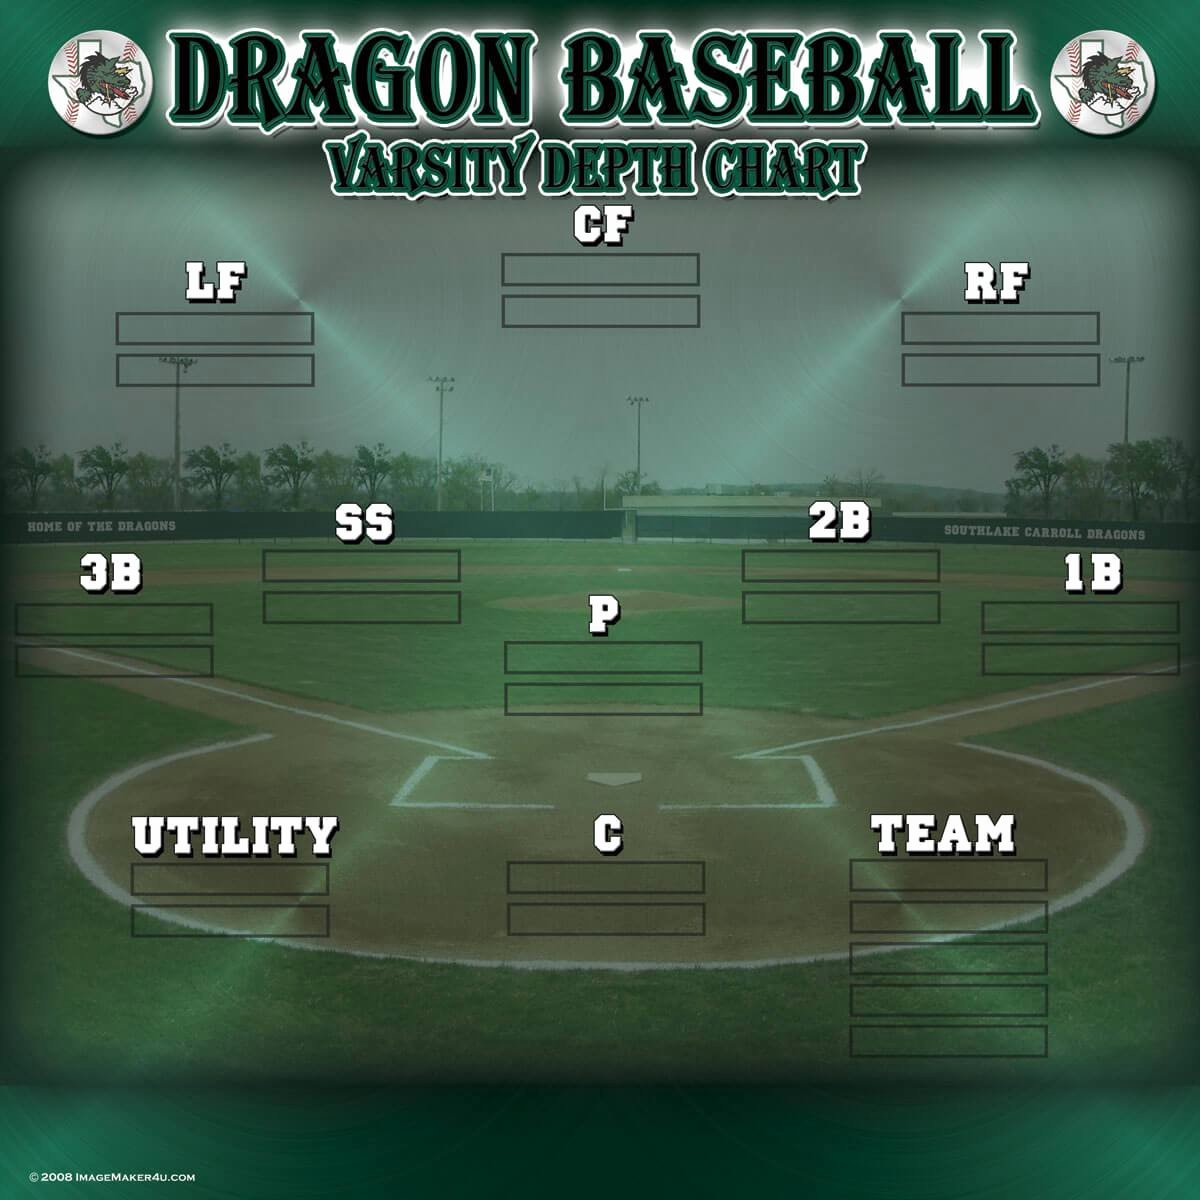 Baseball Depth Chart Template Excel Fresh Baseball Depth Chart Template – Invigo